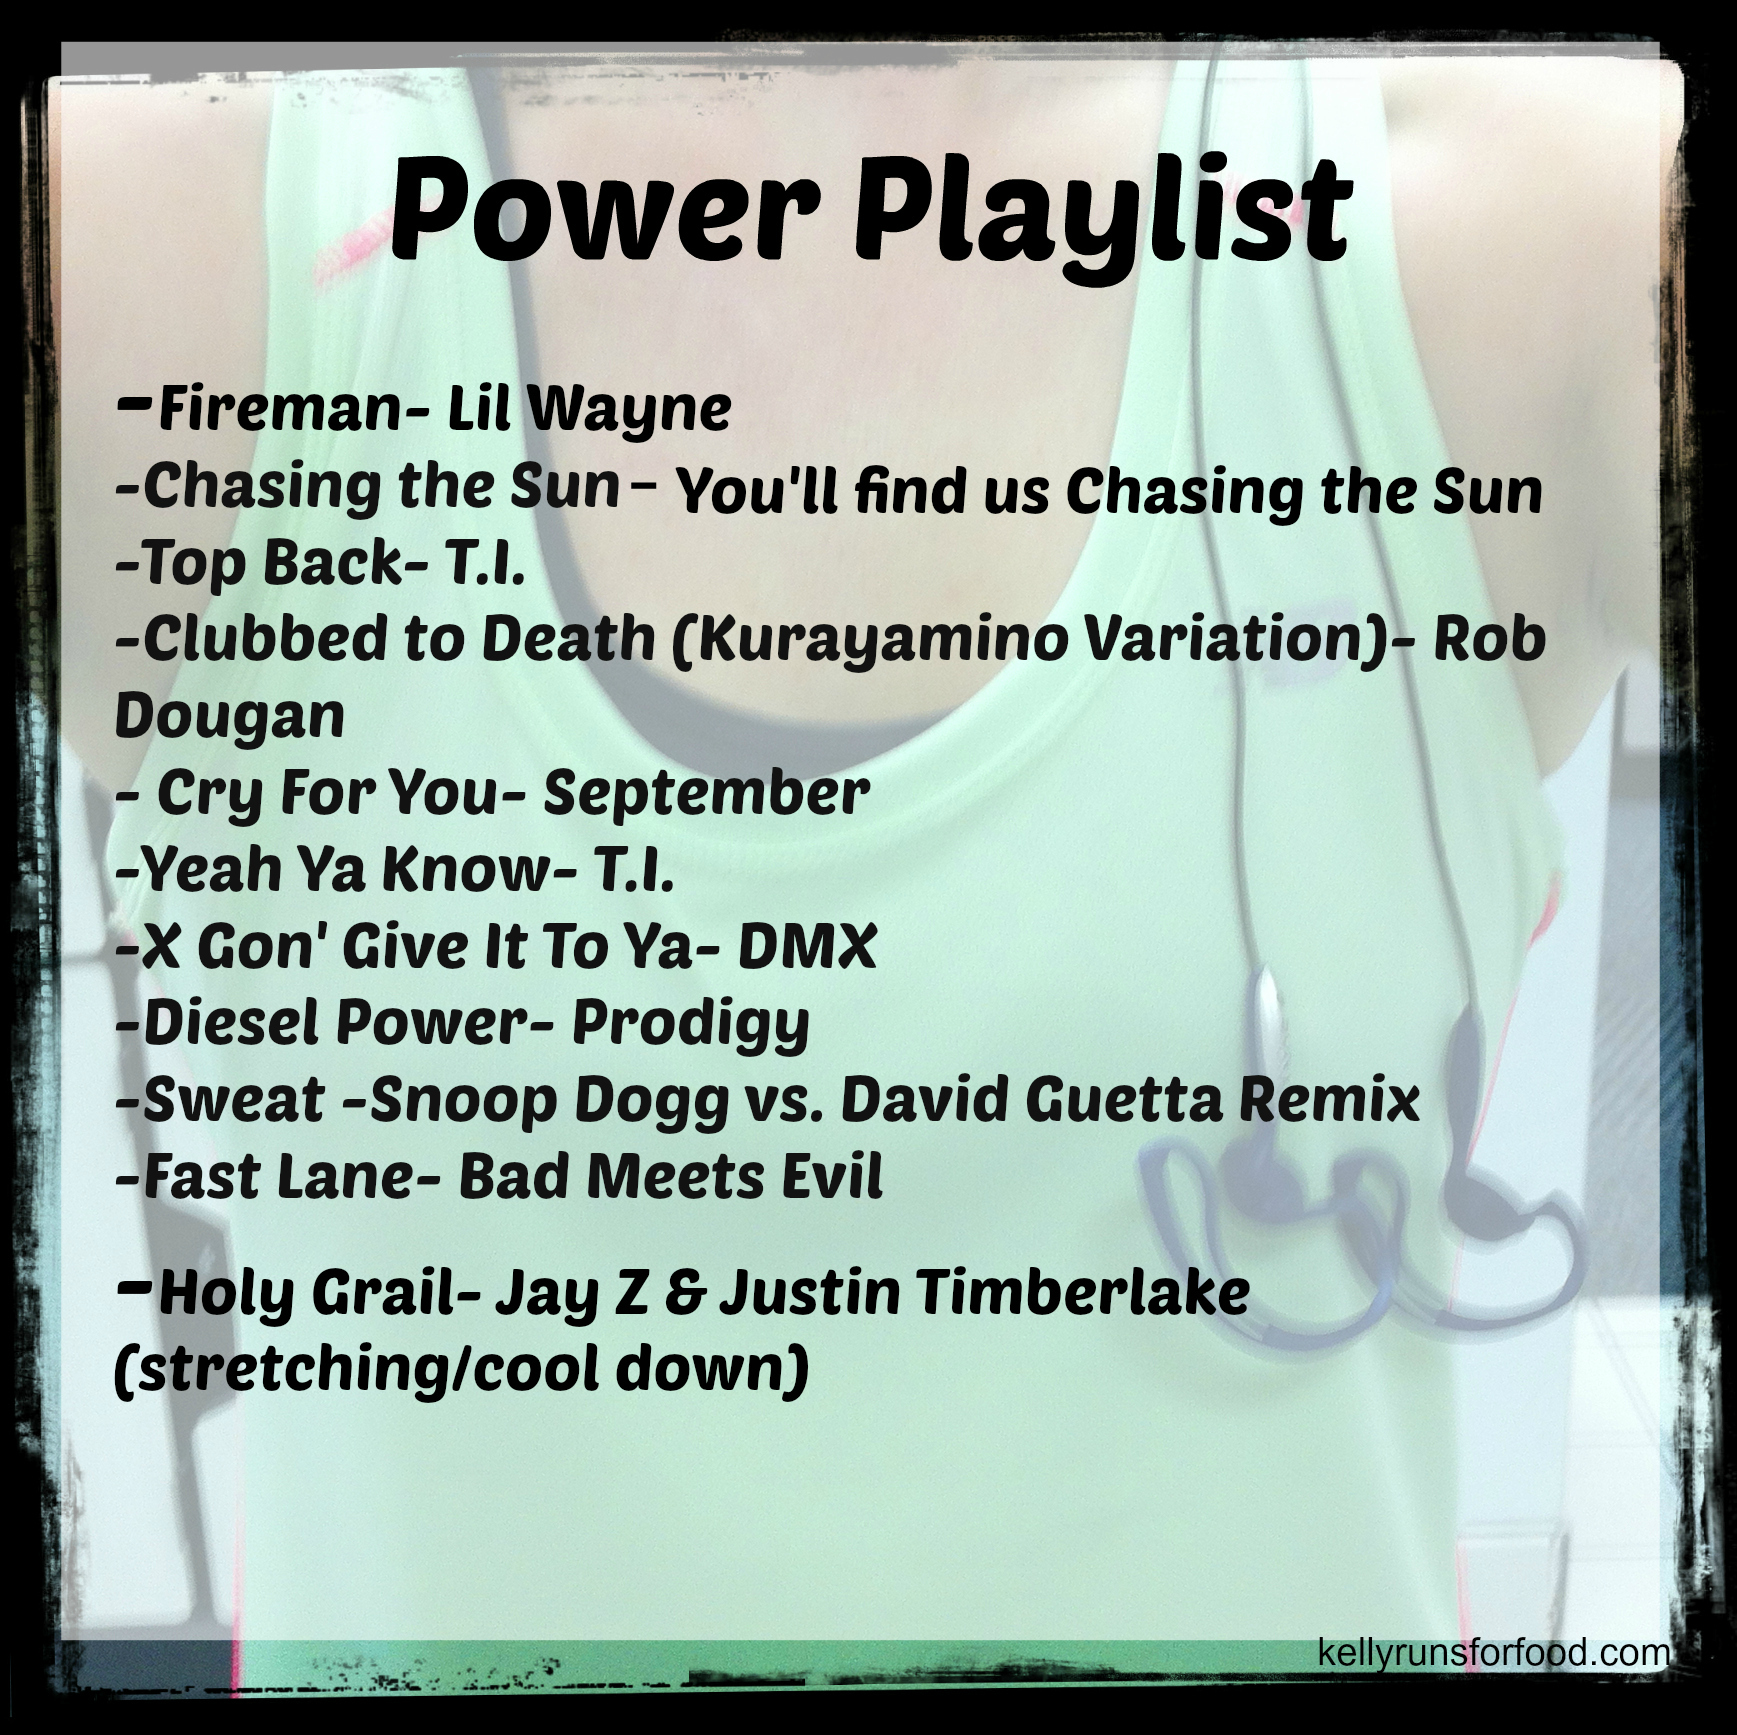 Power Playlist